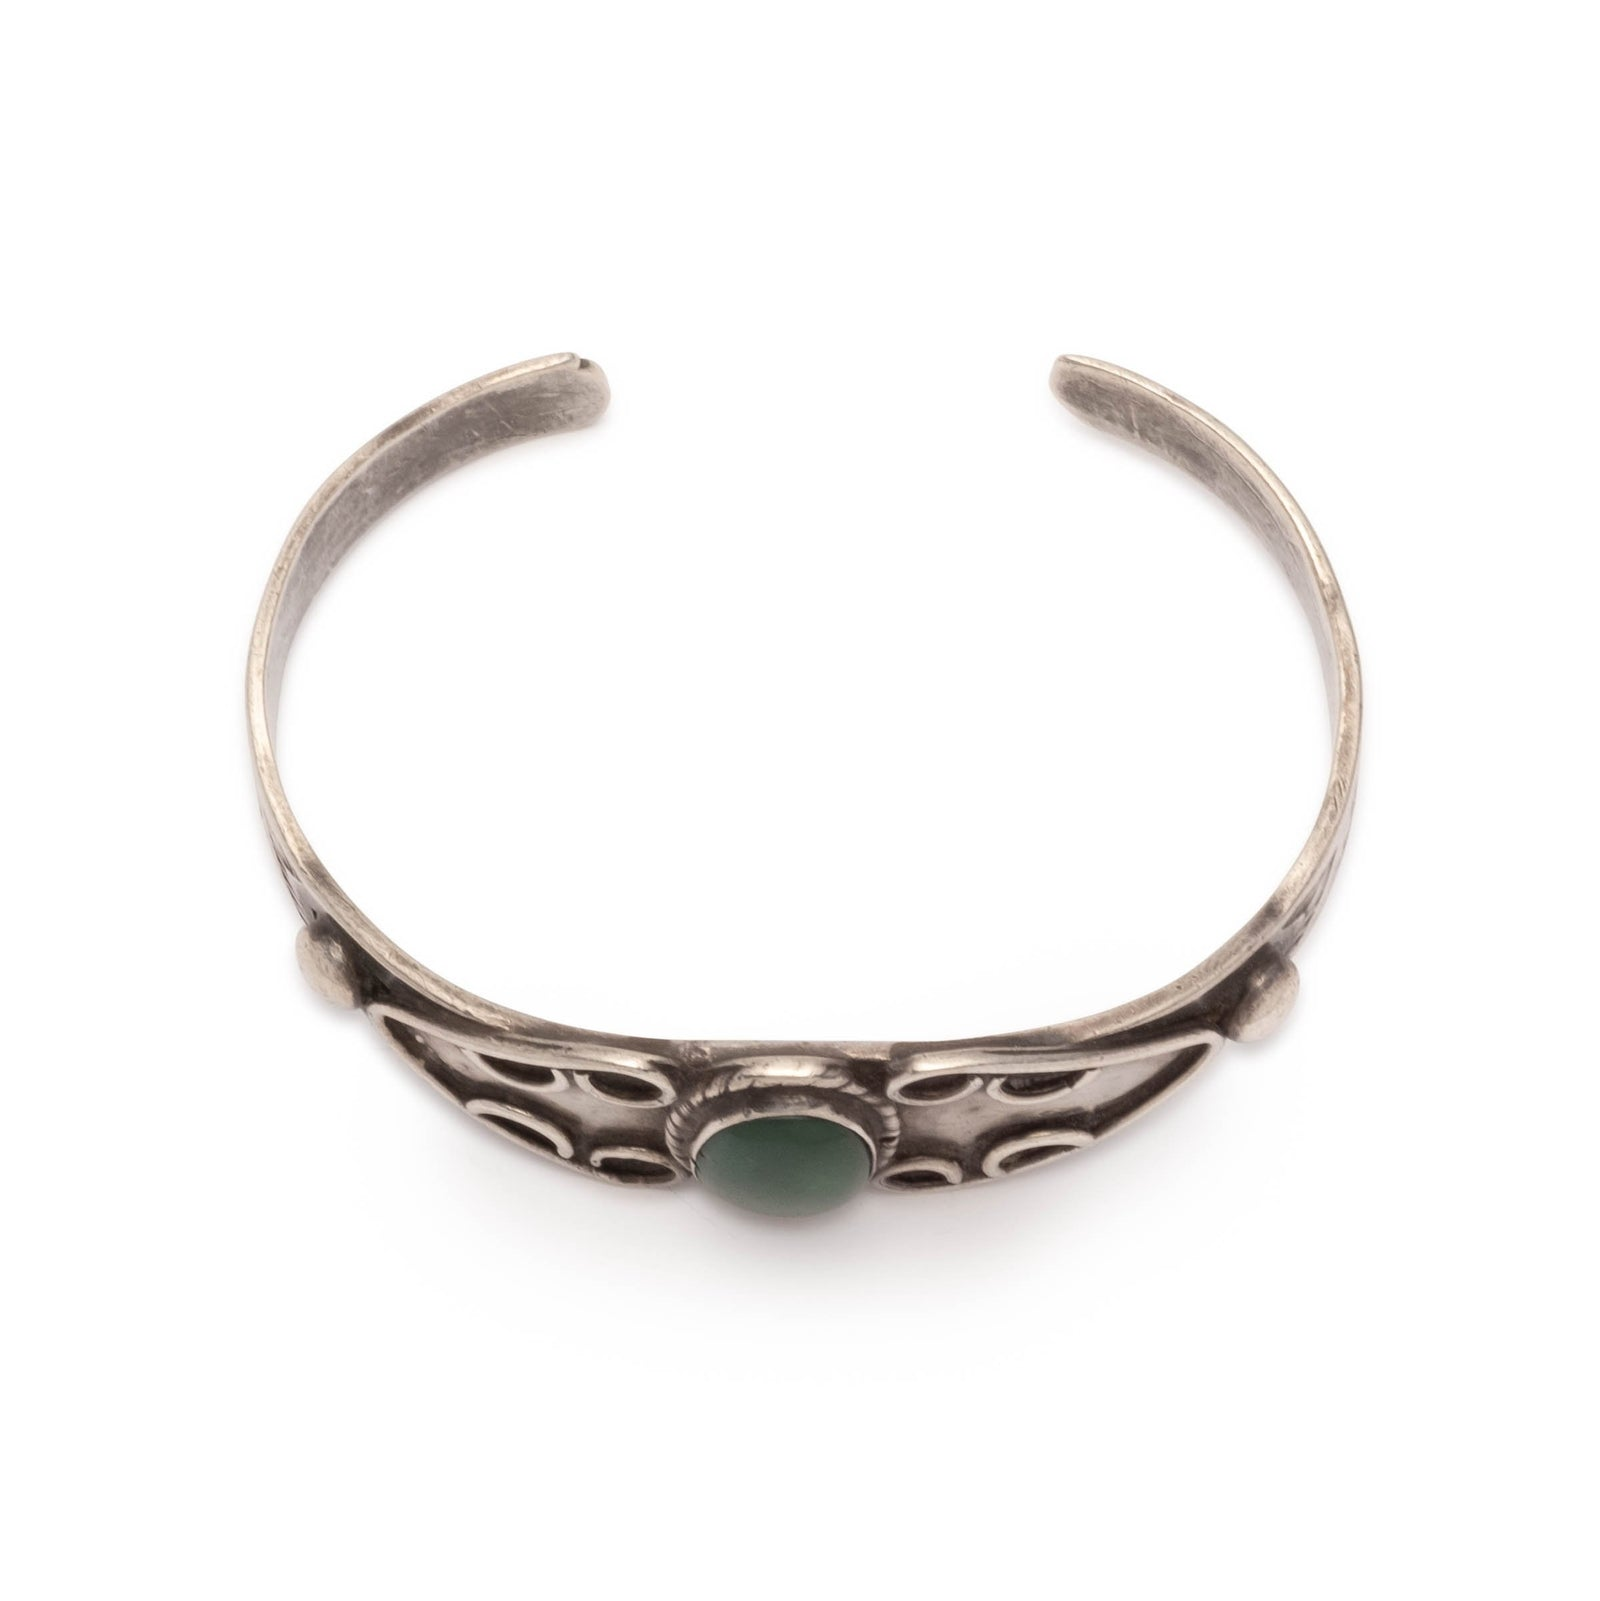 Vintage Sterling Silver Navajo Cuff with Green Turquoise